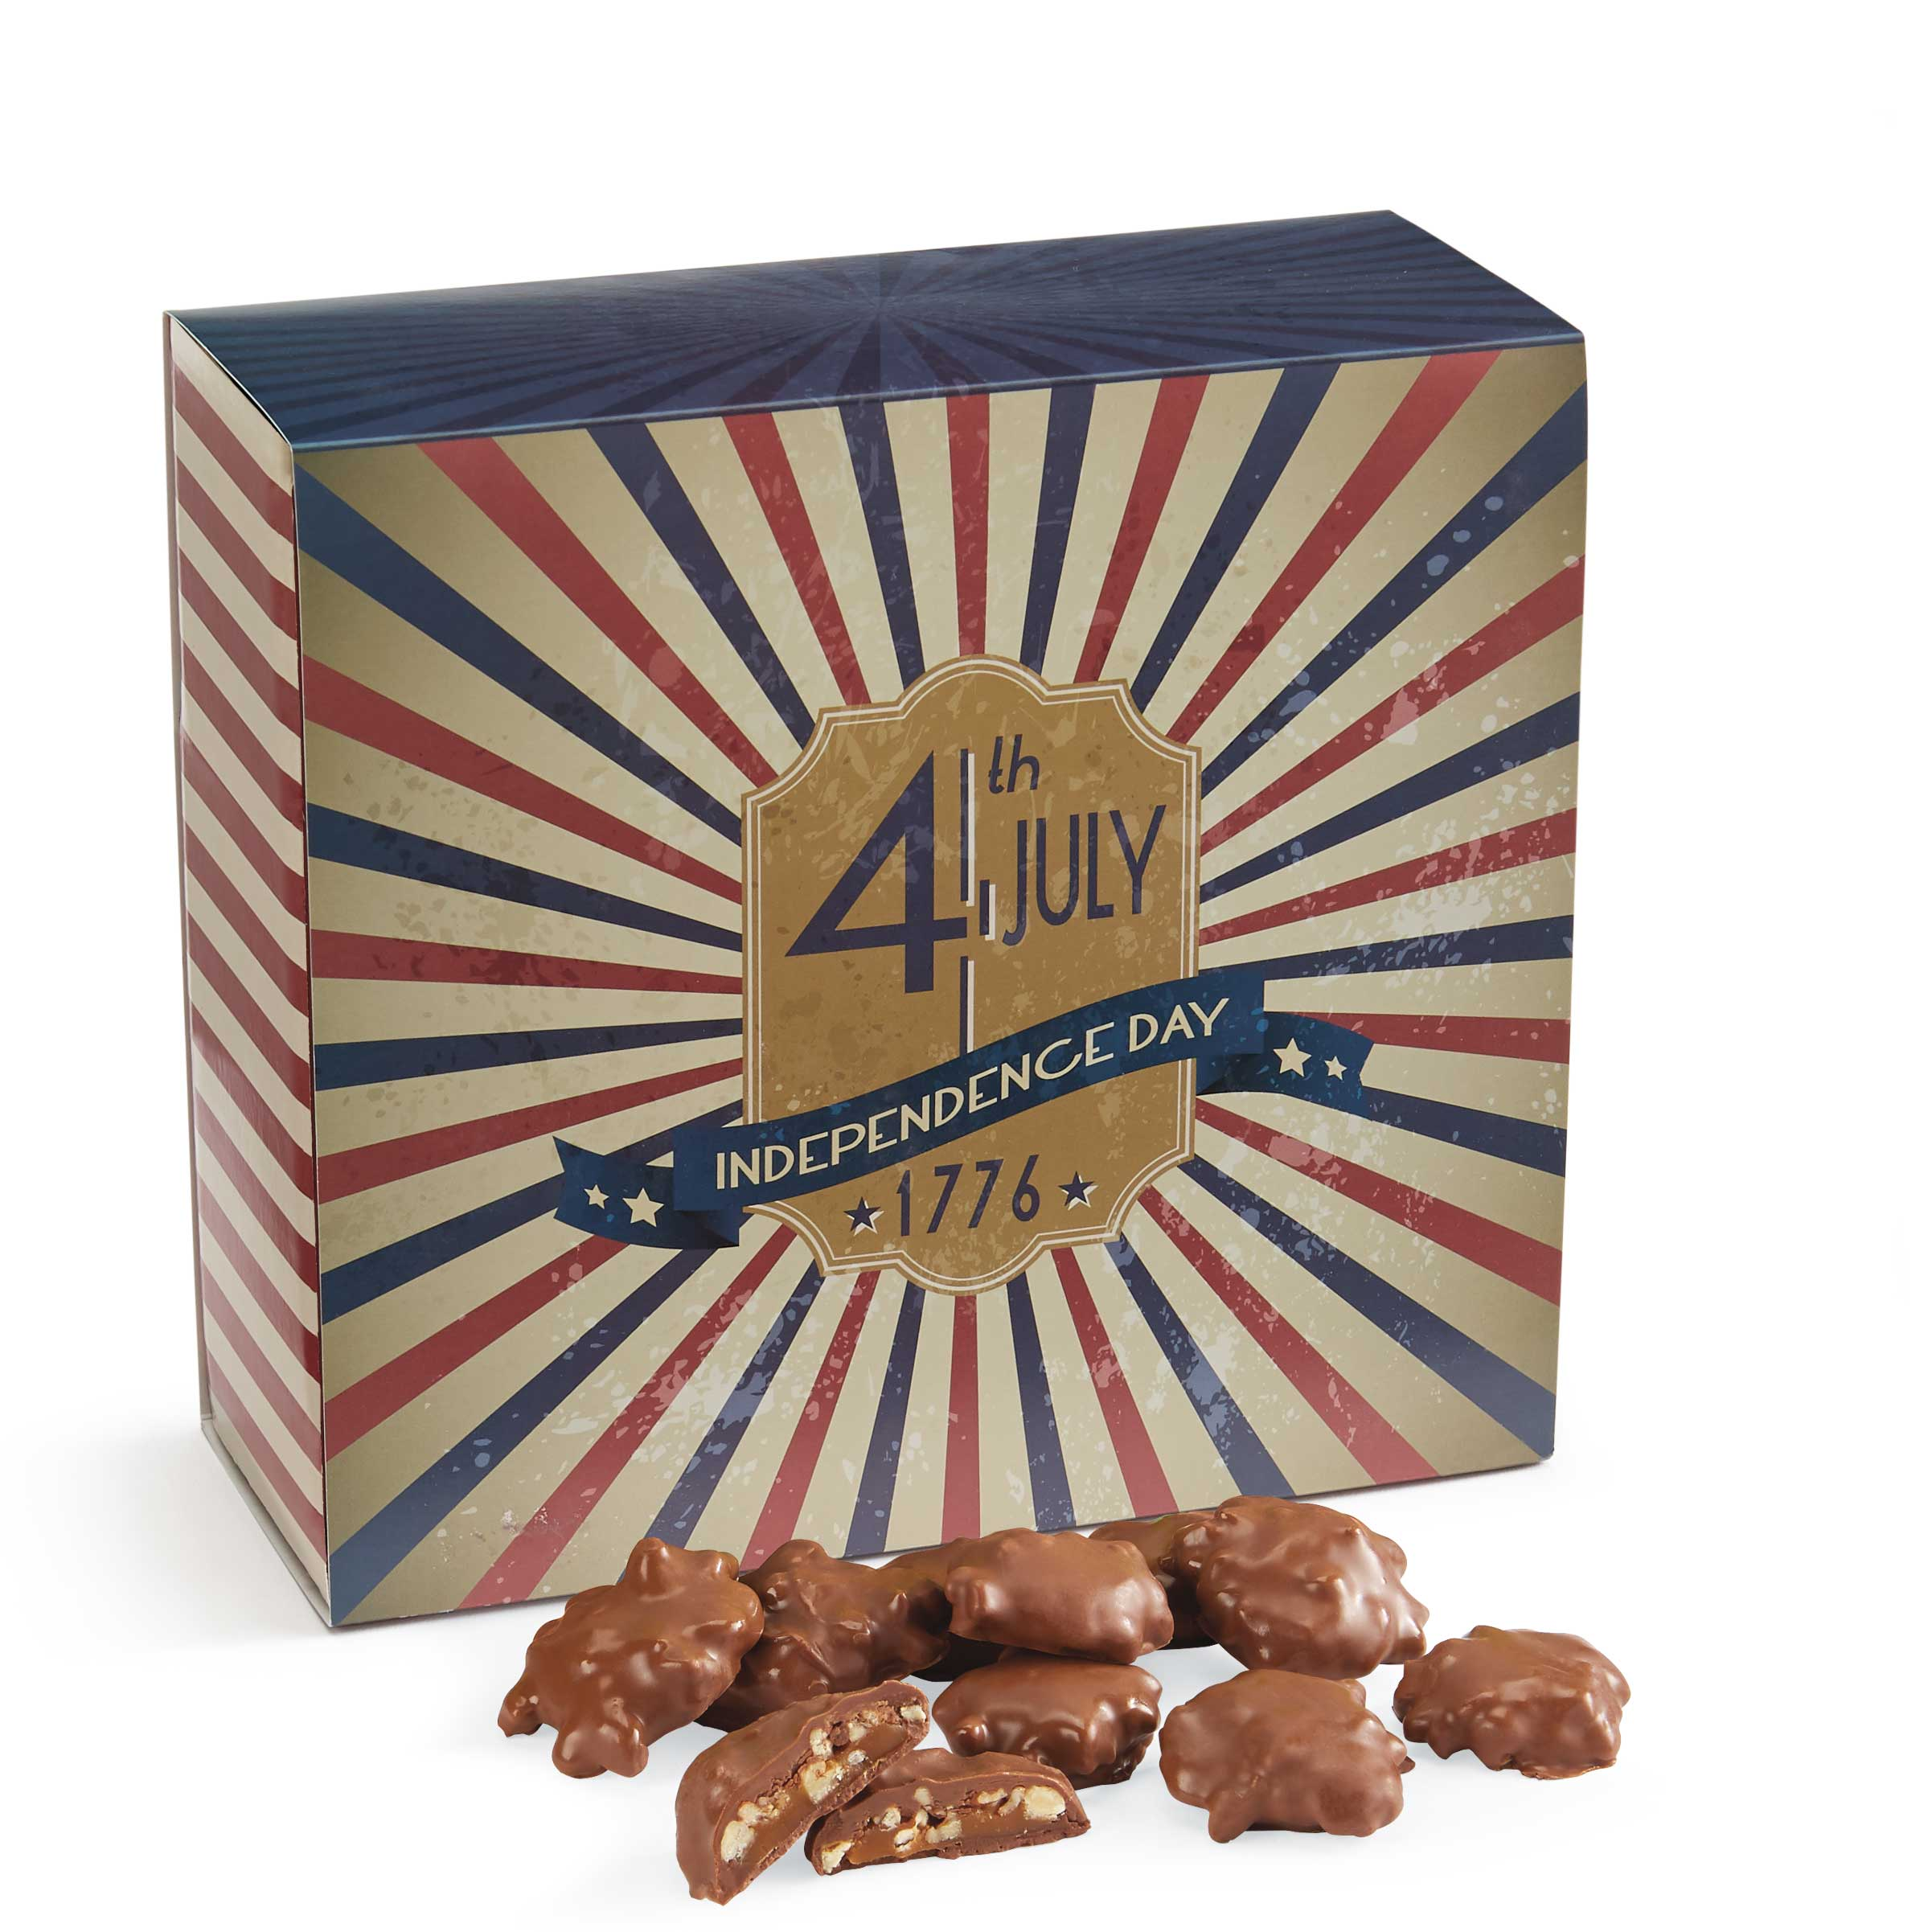 50 Piece Baby Turtle Gophers in the 4th of July Gift Box